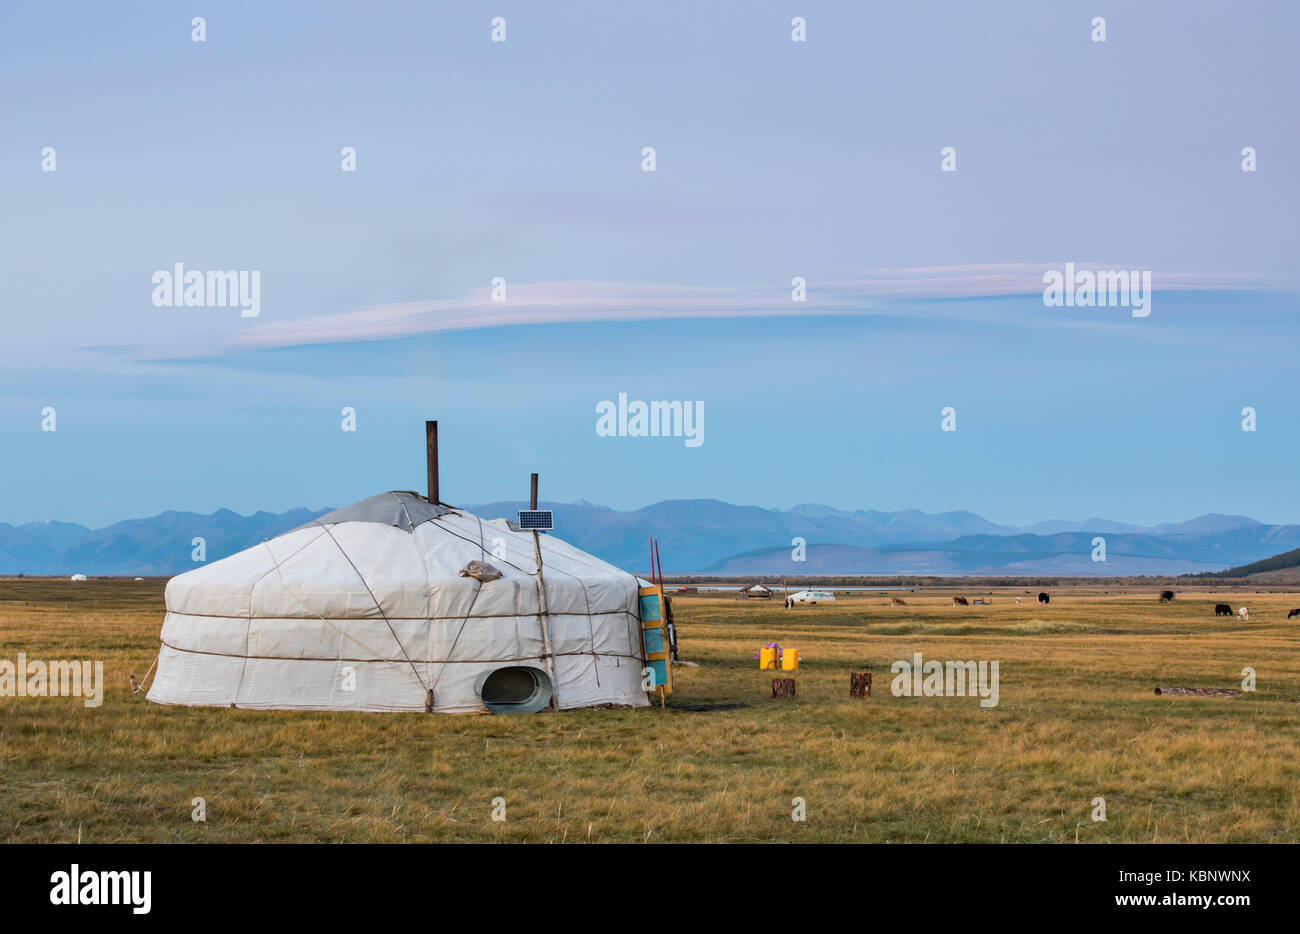 mongolian family gers in a landscape of northern Mongolia - Stock Image